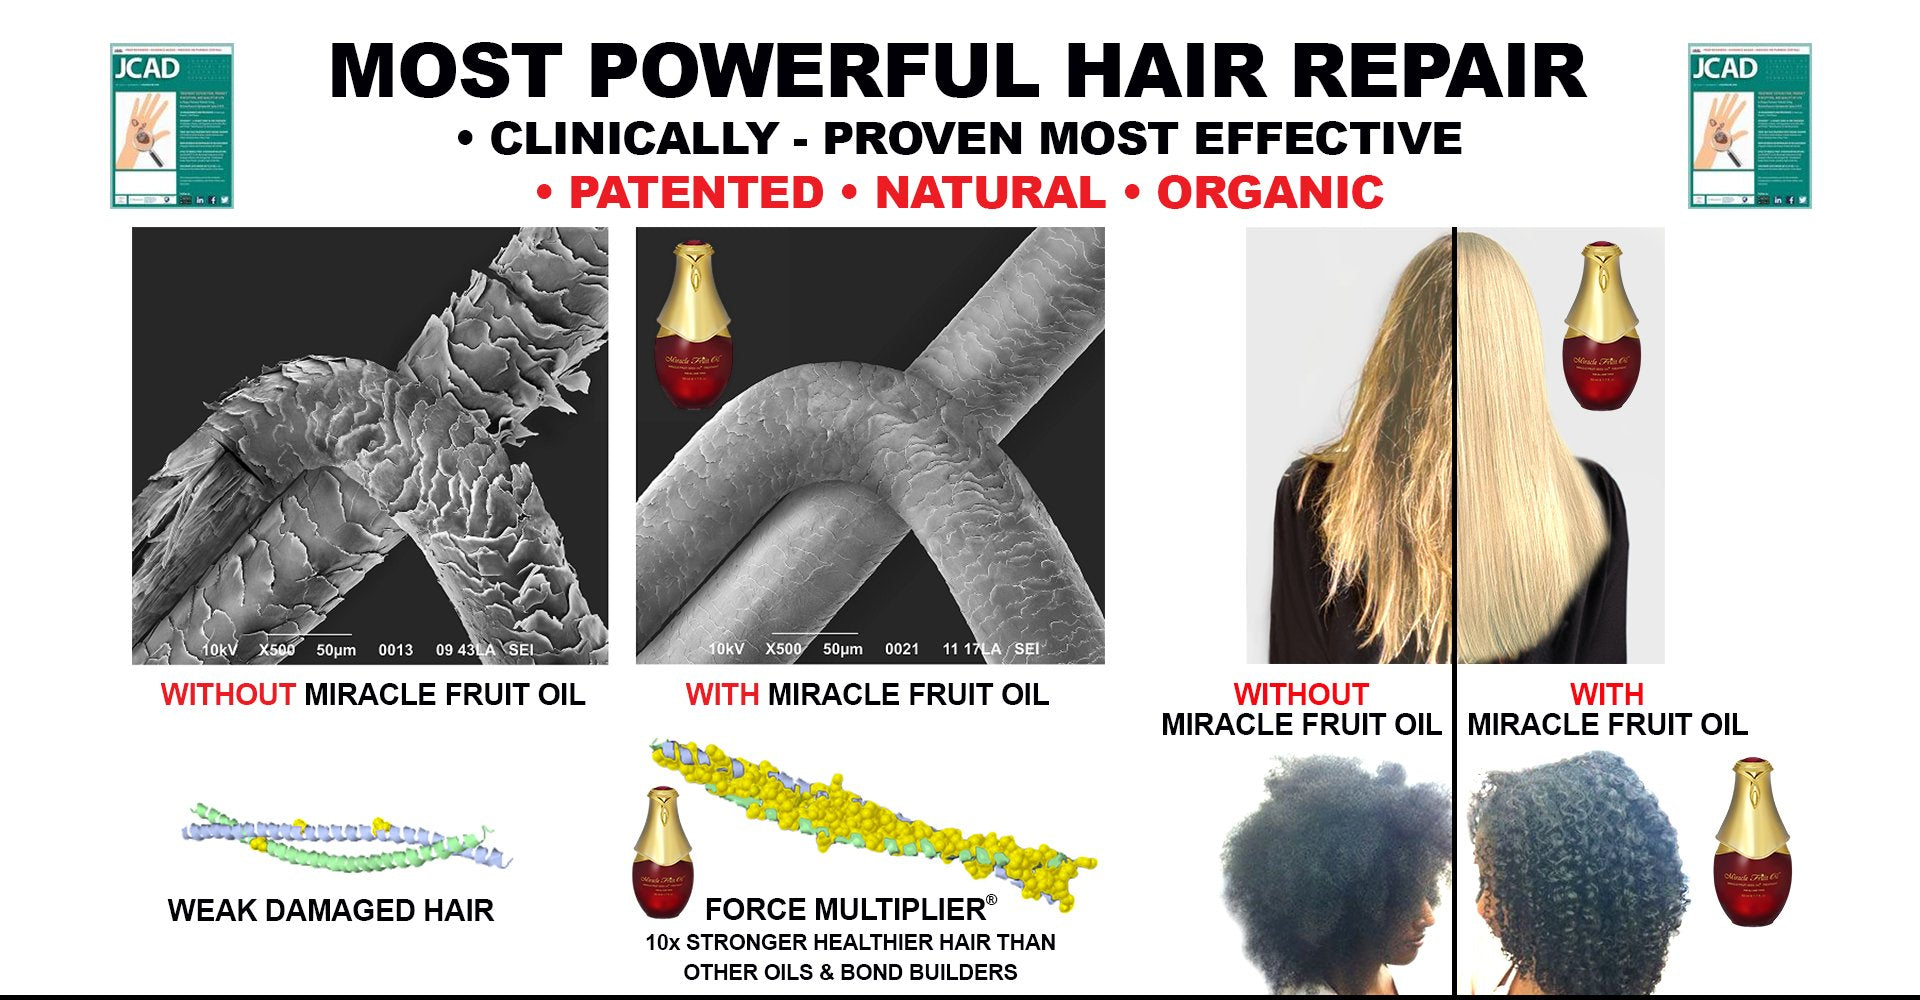 Miracle Fruit Seed Oil Treatment